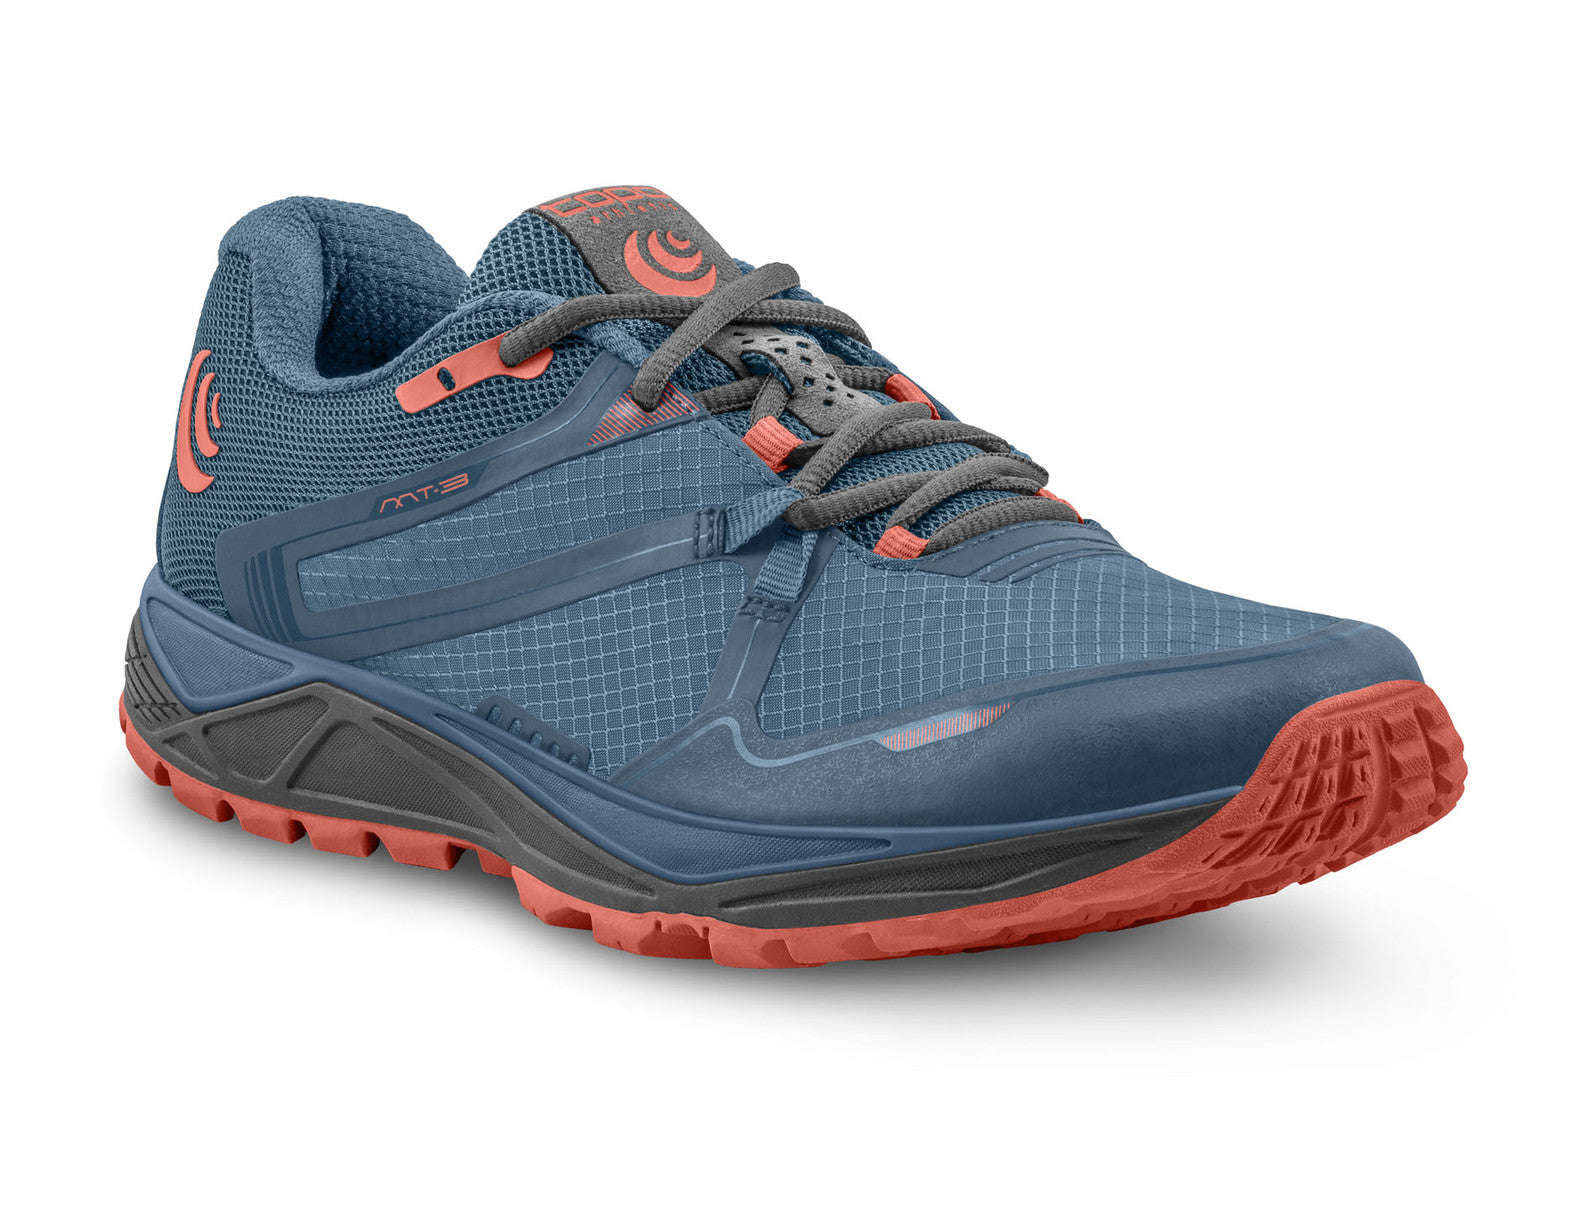 Topo MT-3 Women's Lightweight Trail Running Shoe in Blue/Coral